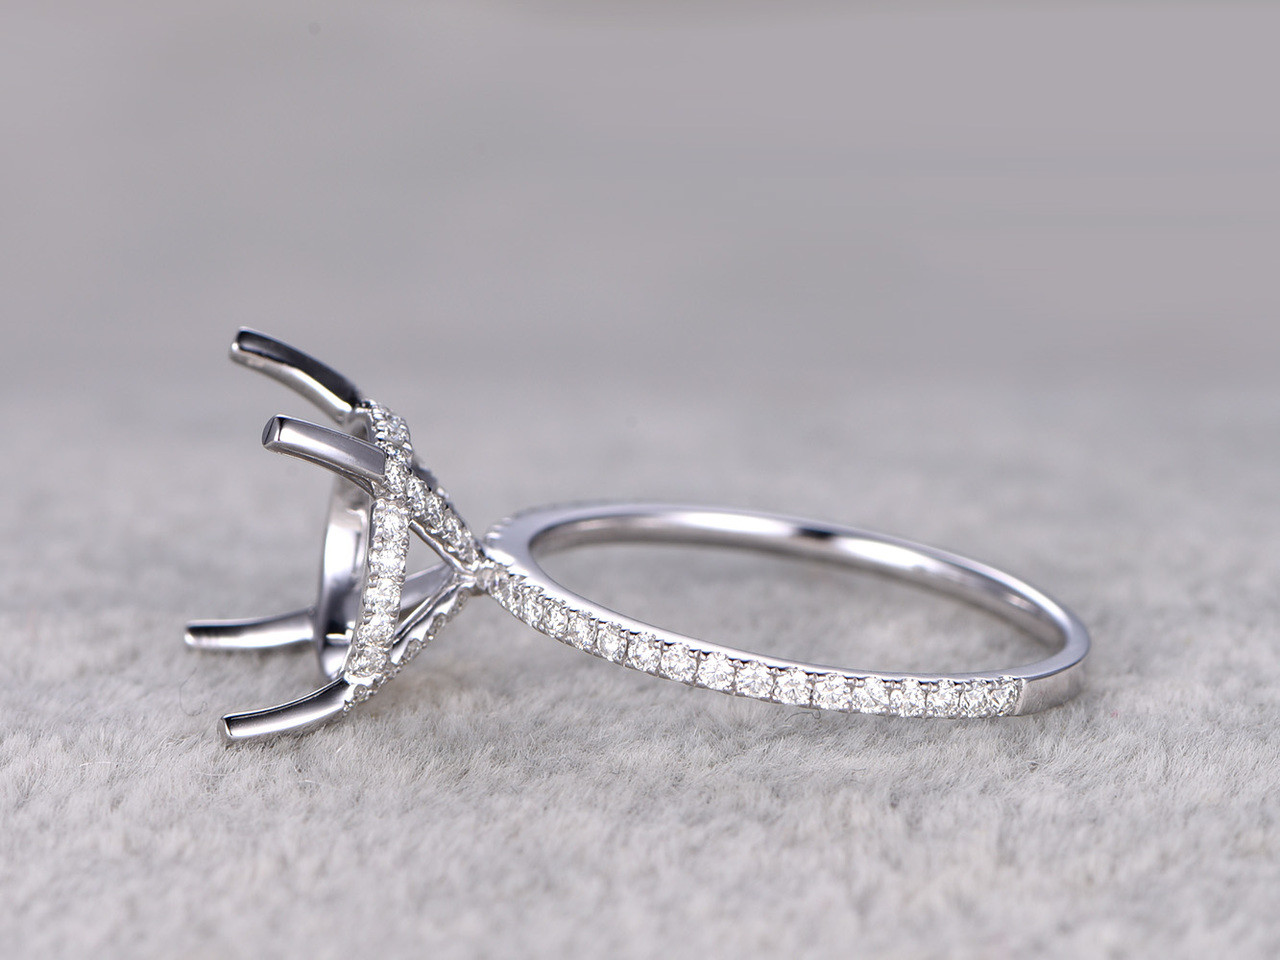 Sterling Silver Semi Mount 10mm Round Cut Diamond Weeding Ring Prong Setting